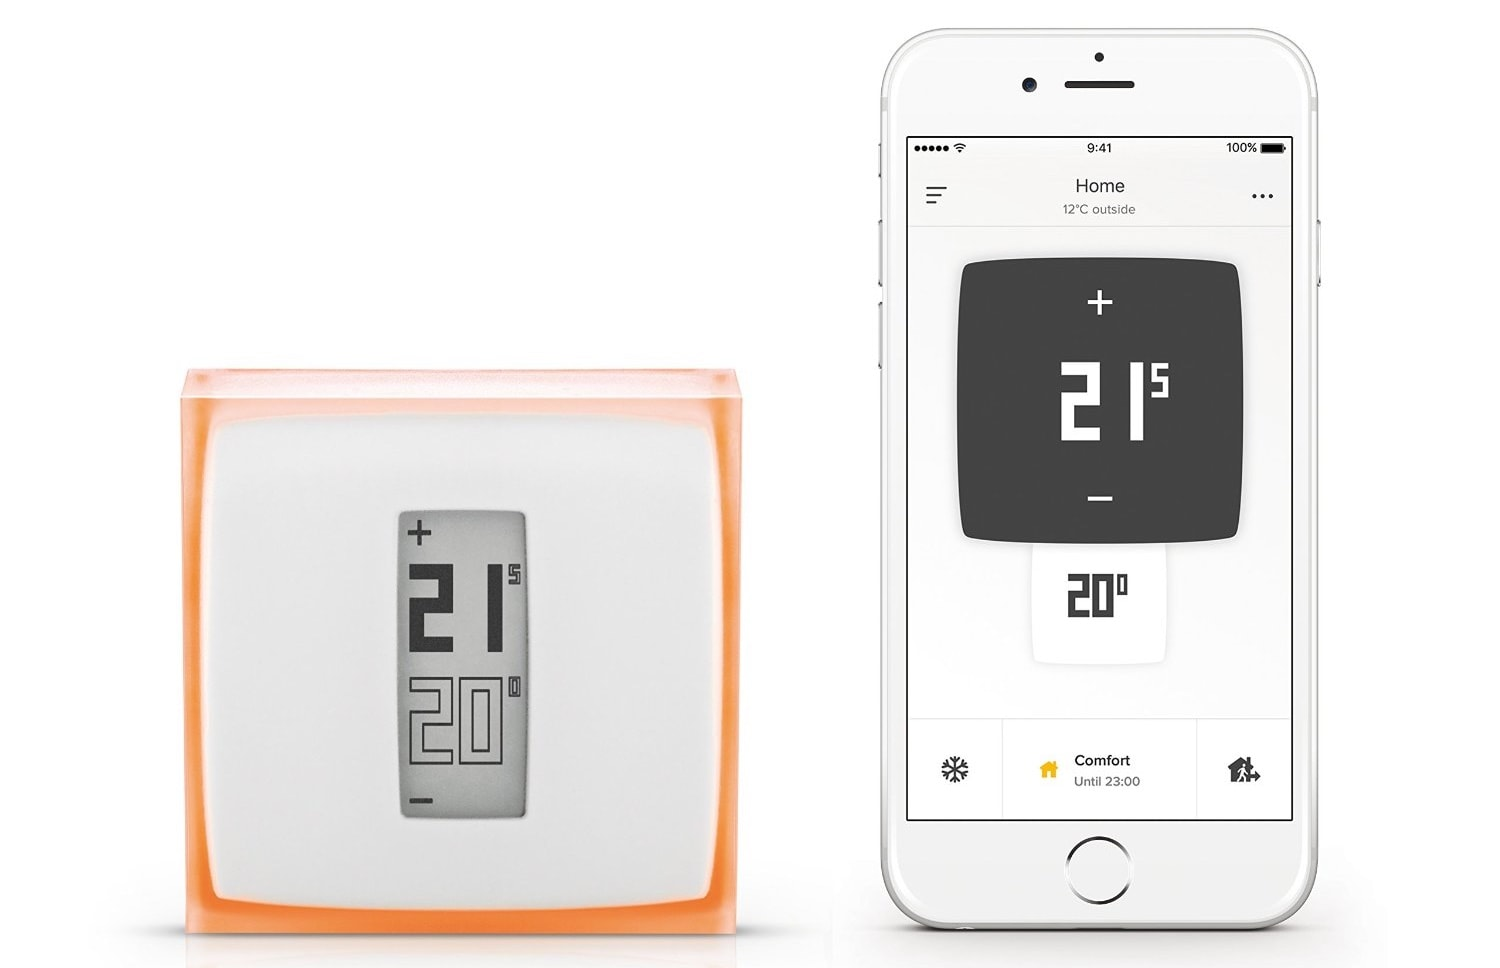 promo le thermostat netatmo 134 et un support de bureau pour iphone 7 igeneration. Black Bedroom Furniture Sets. Home Design Ideas